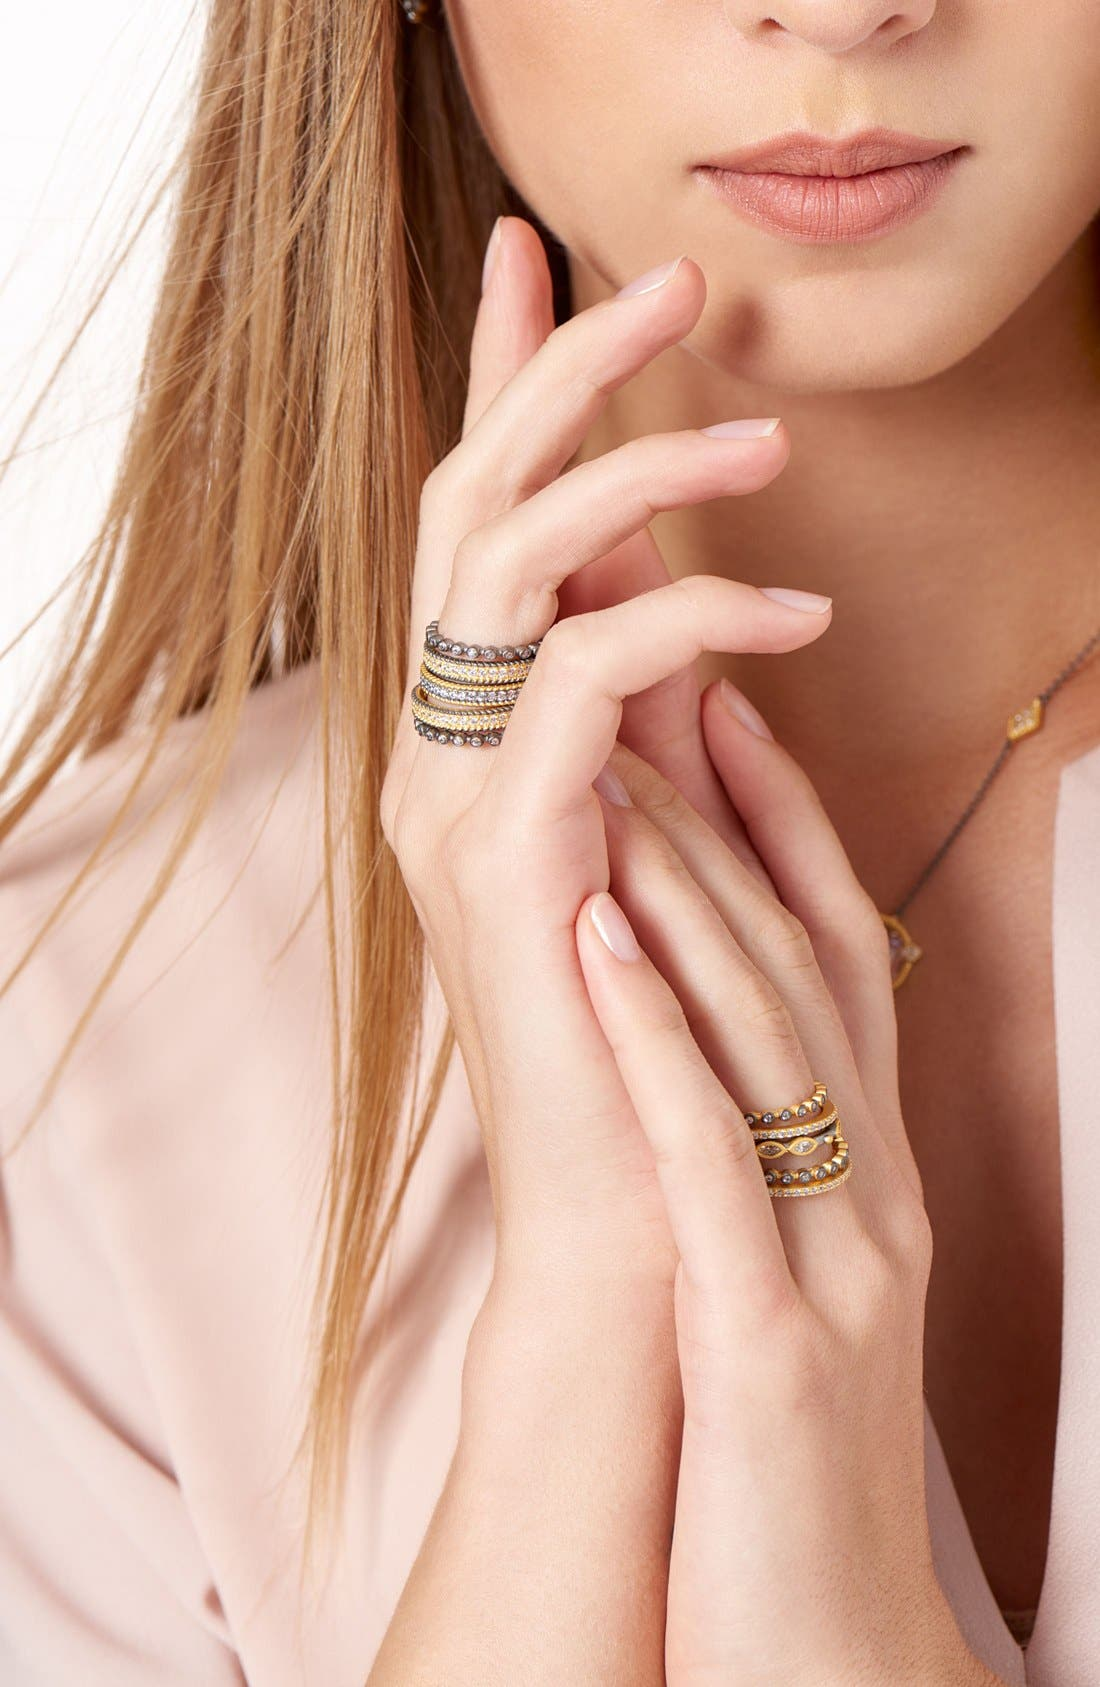 'The Standards' Stackable Rings,                             Alternate thumbnail 4, color,                             GUNMETAL/ GOLD